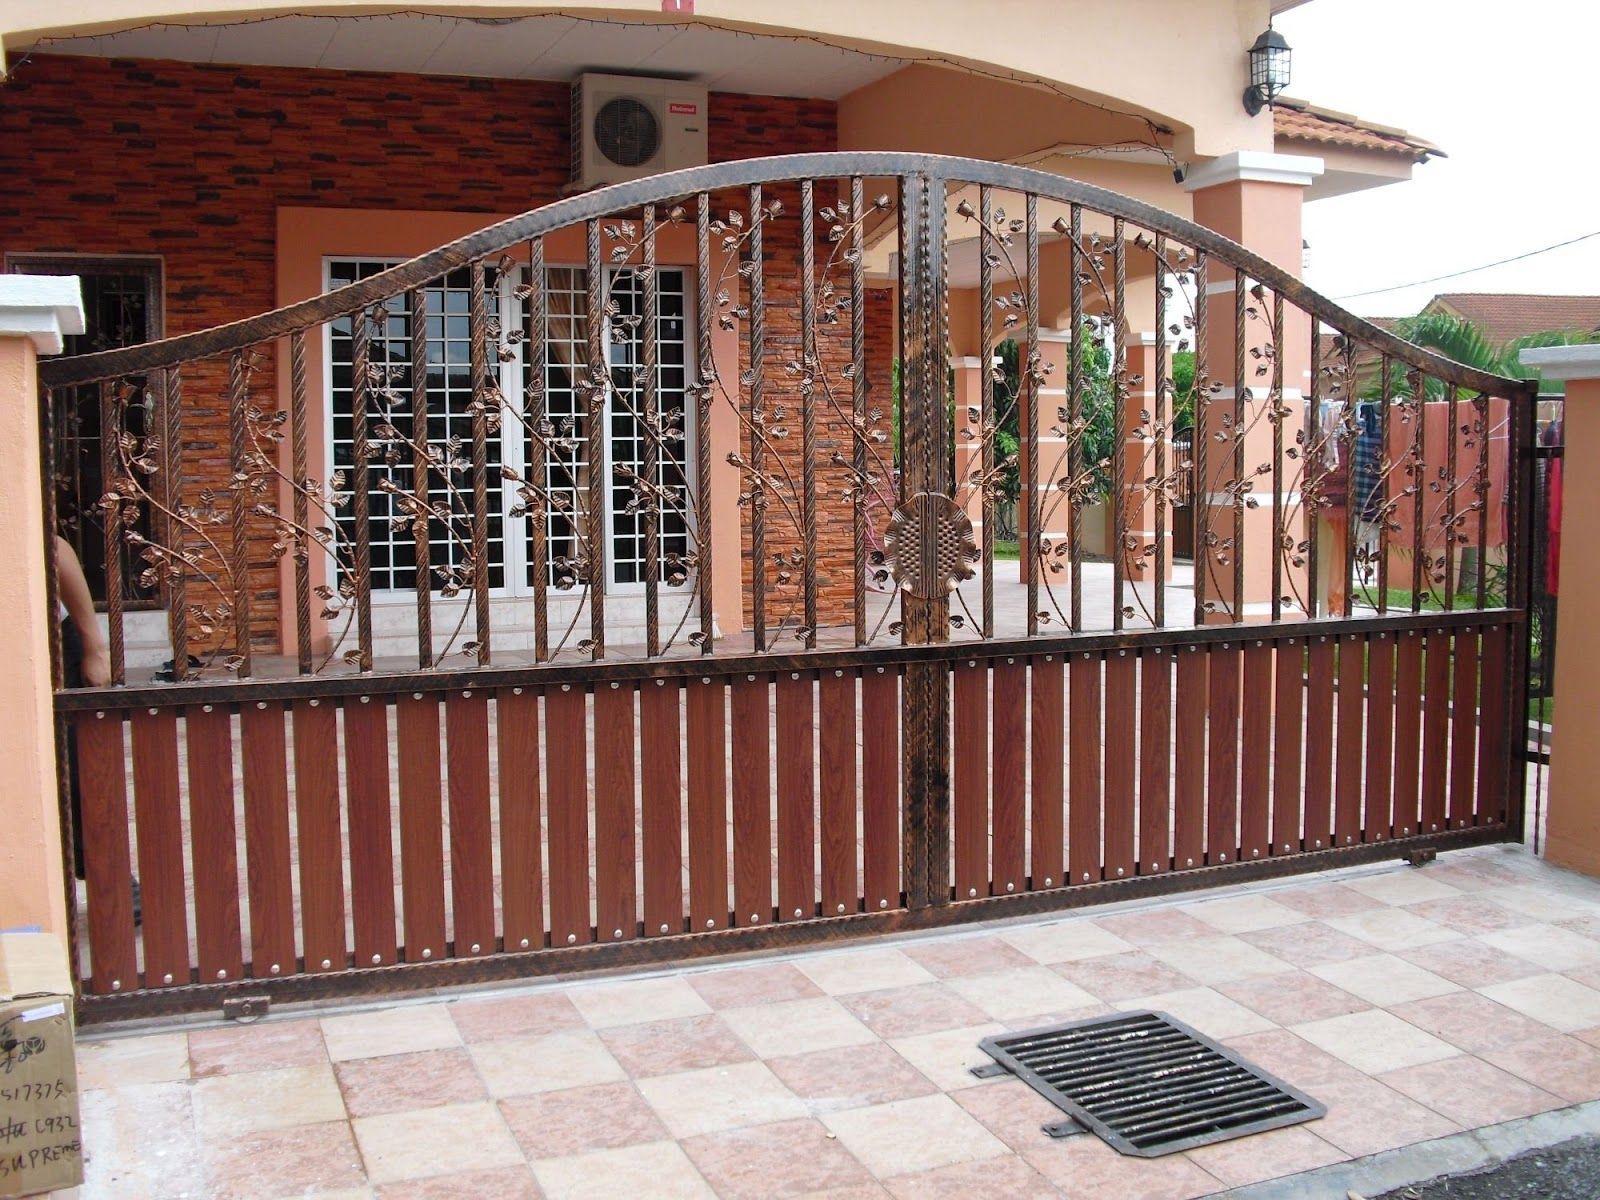 6ac62f125c74b8a6293185d939981a35 - 23+ Small House Latest Gate Design 2020 Pictures